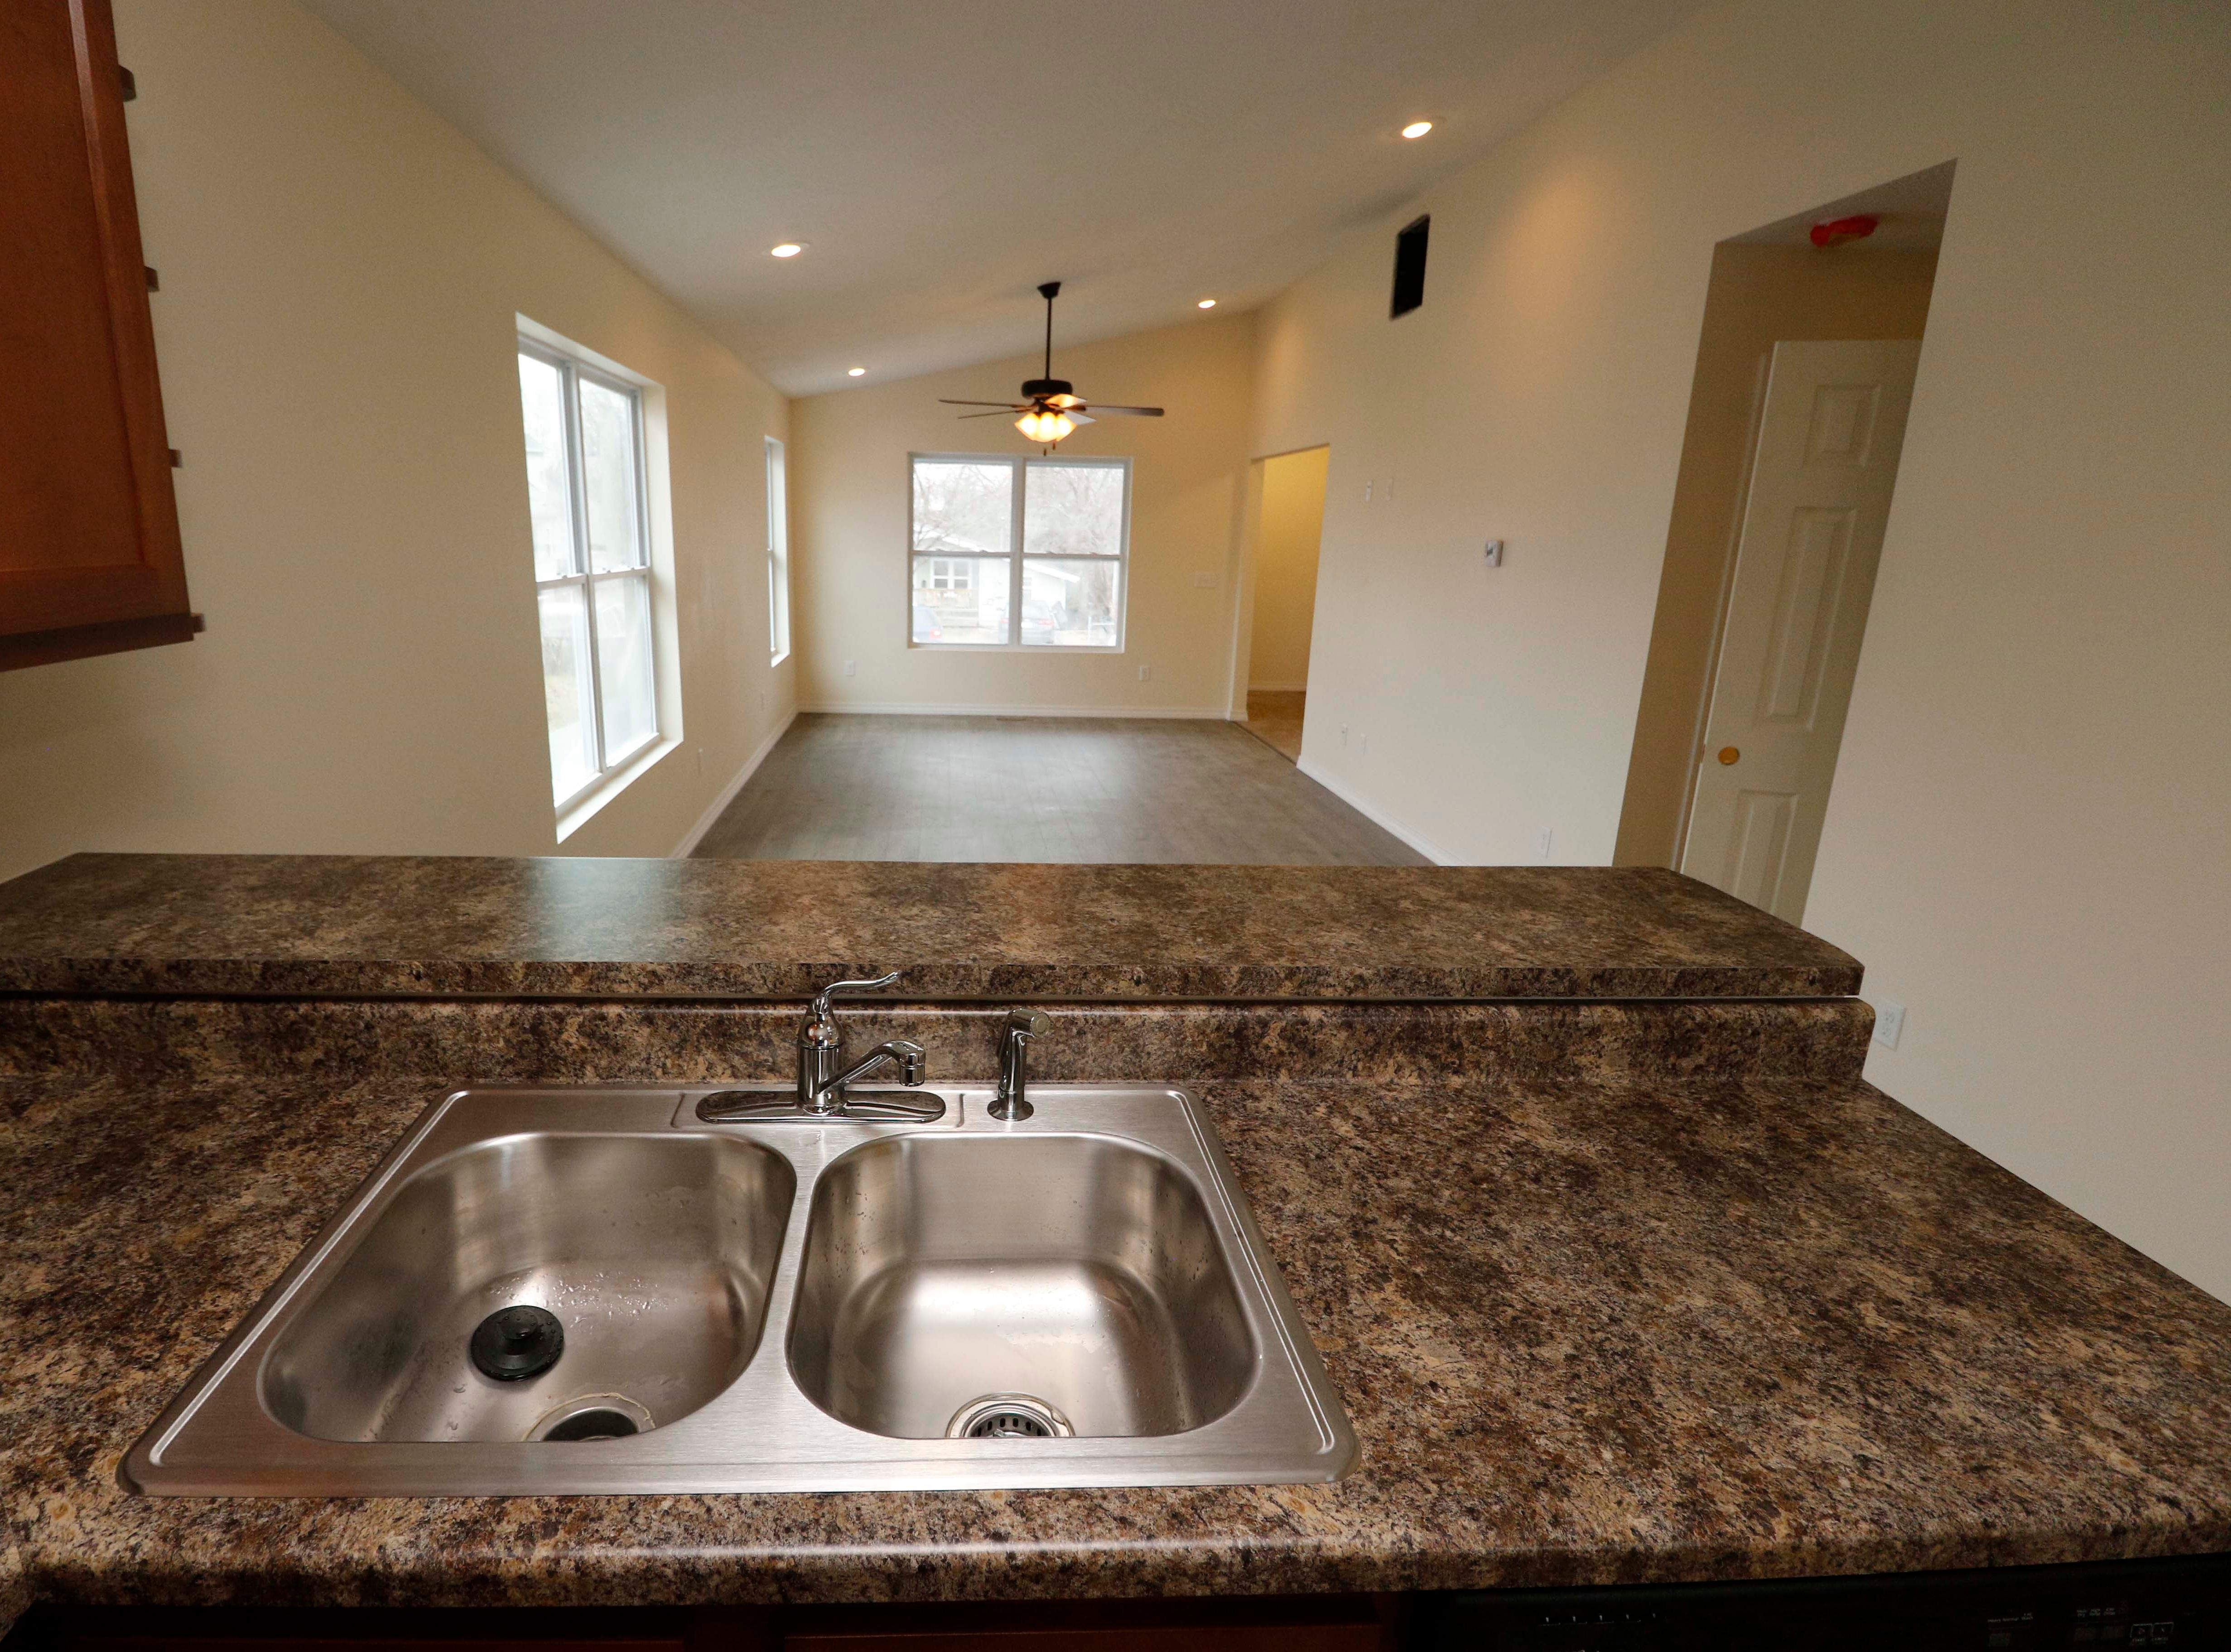 The kitchen from the new Habitat for Humanity house on North Main in Springfield on January 18, 2019.